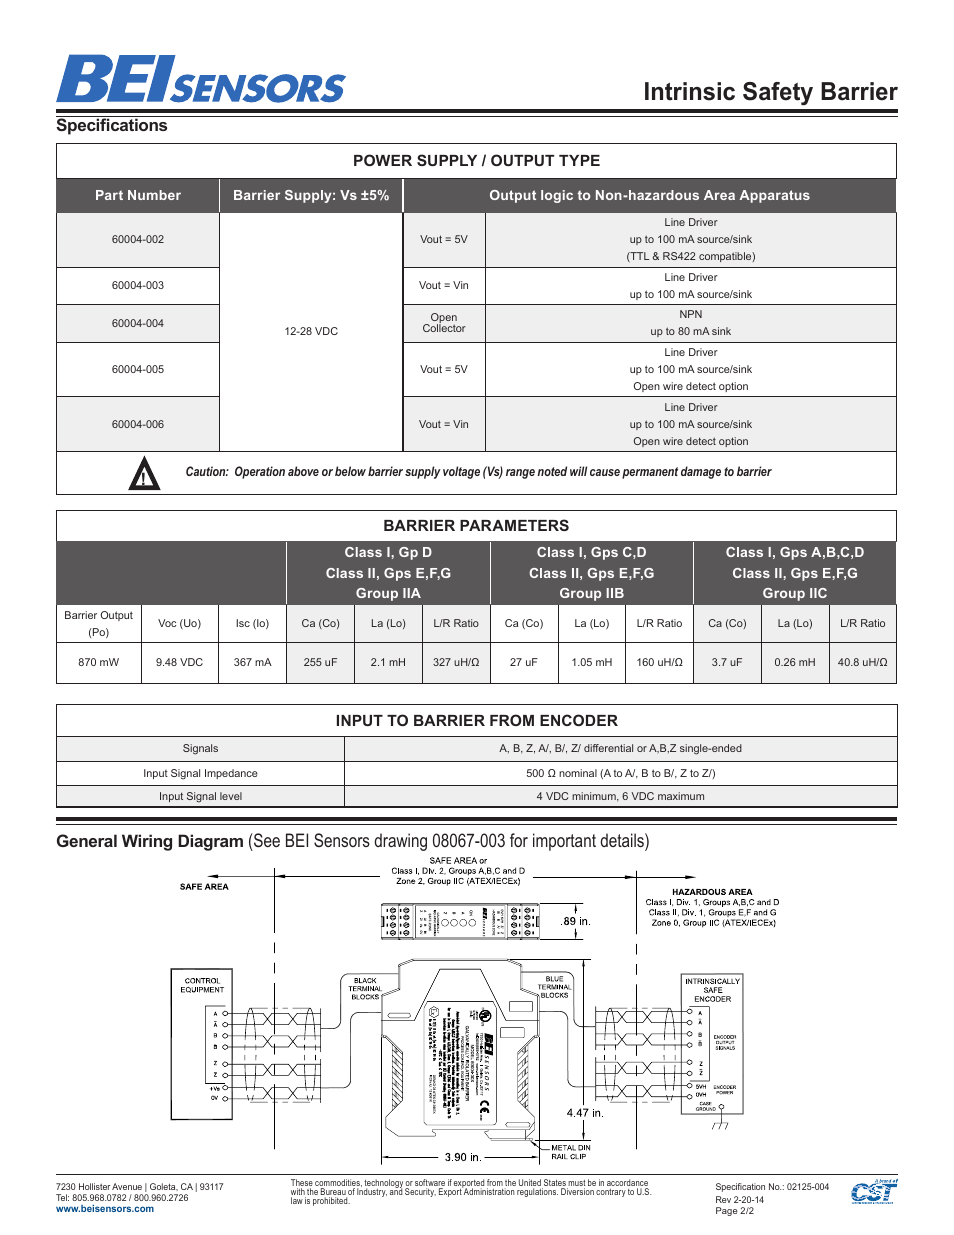 bei sensors intrinsic safety barrier page2 intrinsic safety barrier, specifications, general wiring diagram intrinsically safe barrier wiring diagram at edmiracle.co